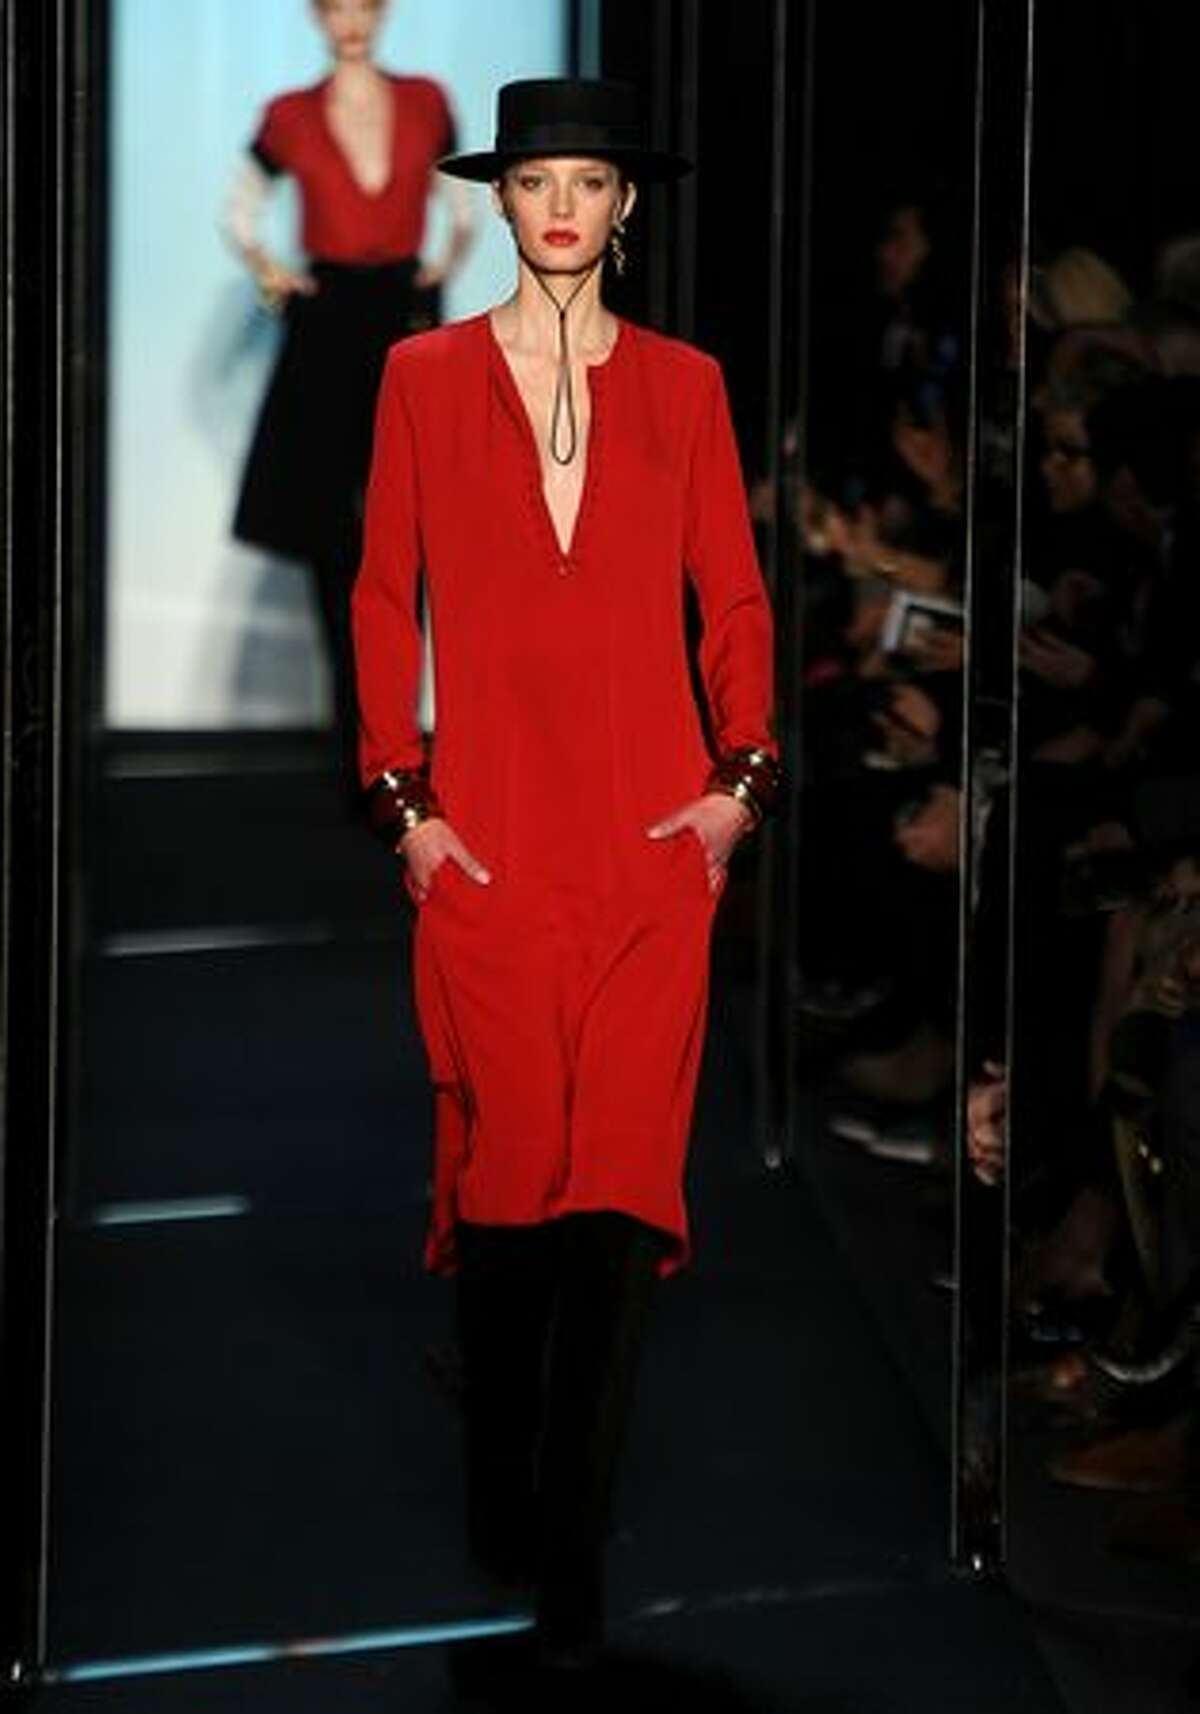 A model walks the runway at the Diane von Furstenberg Fall 2011 fashion show during Mercedes-Benz Fashion Week at The Theatre at Lincoln Center in New York City.